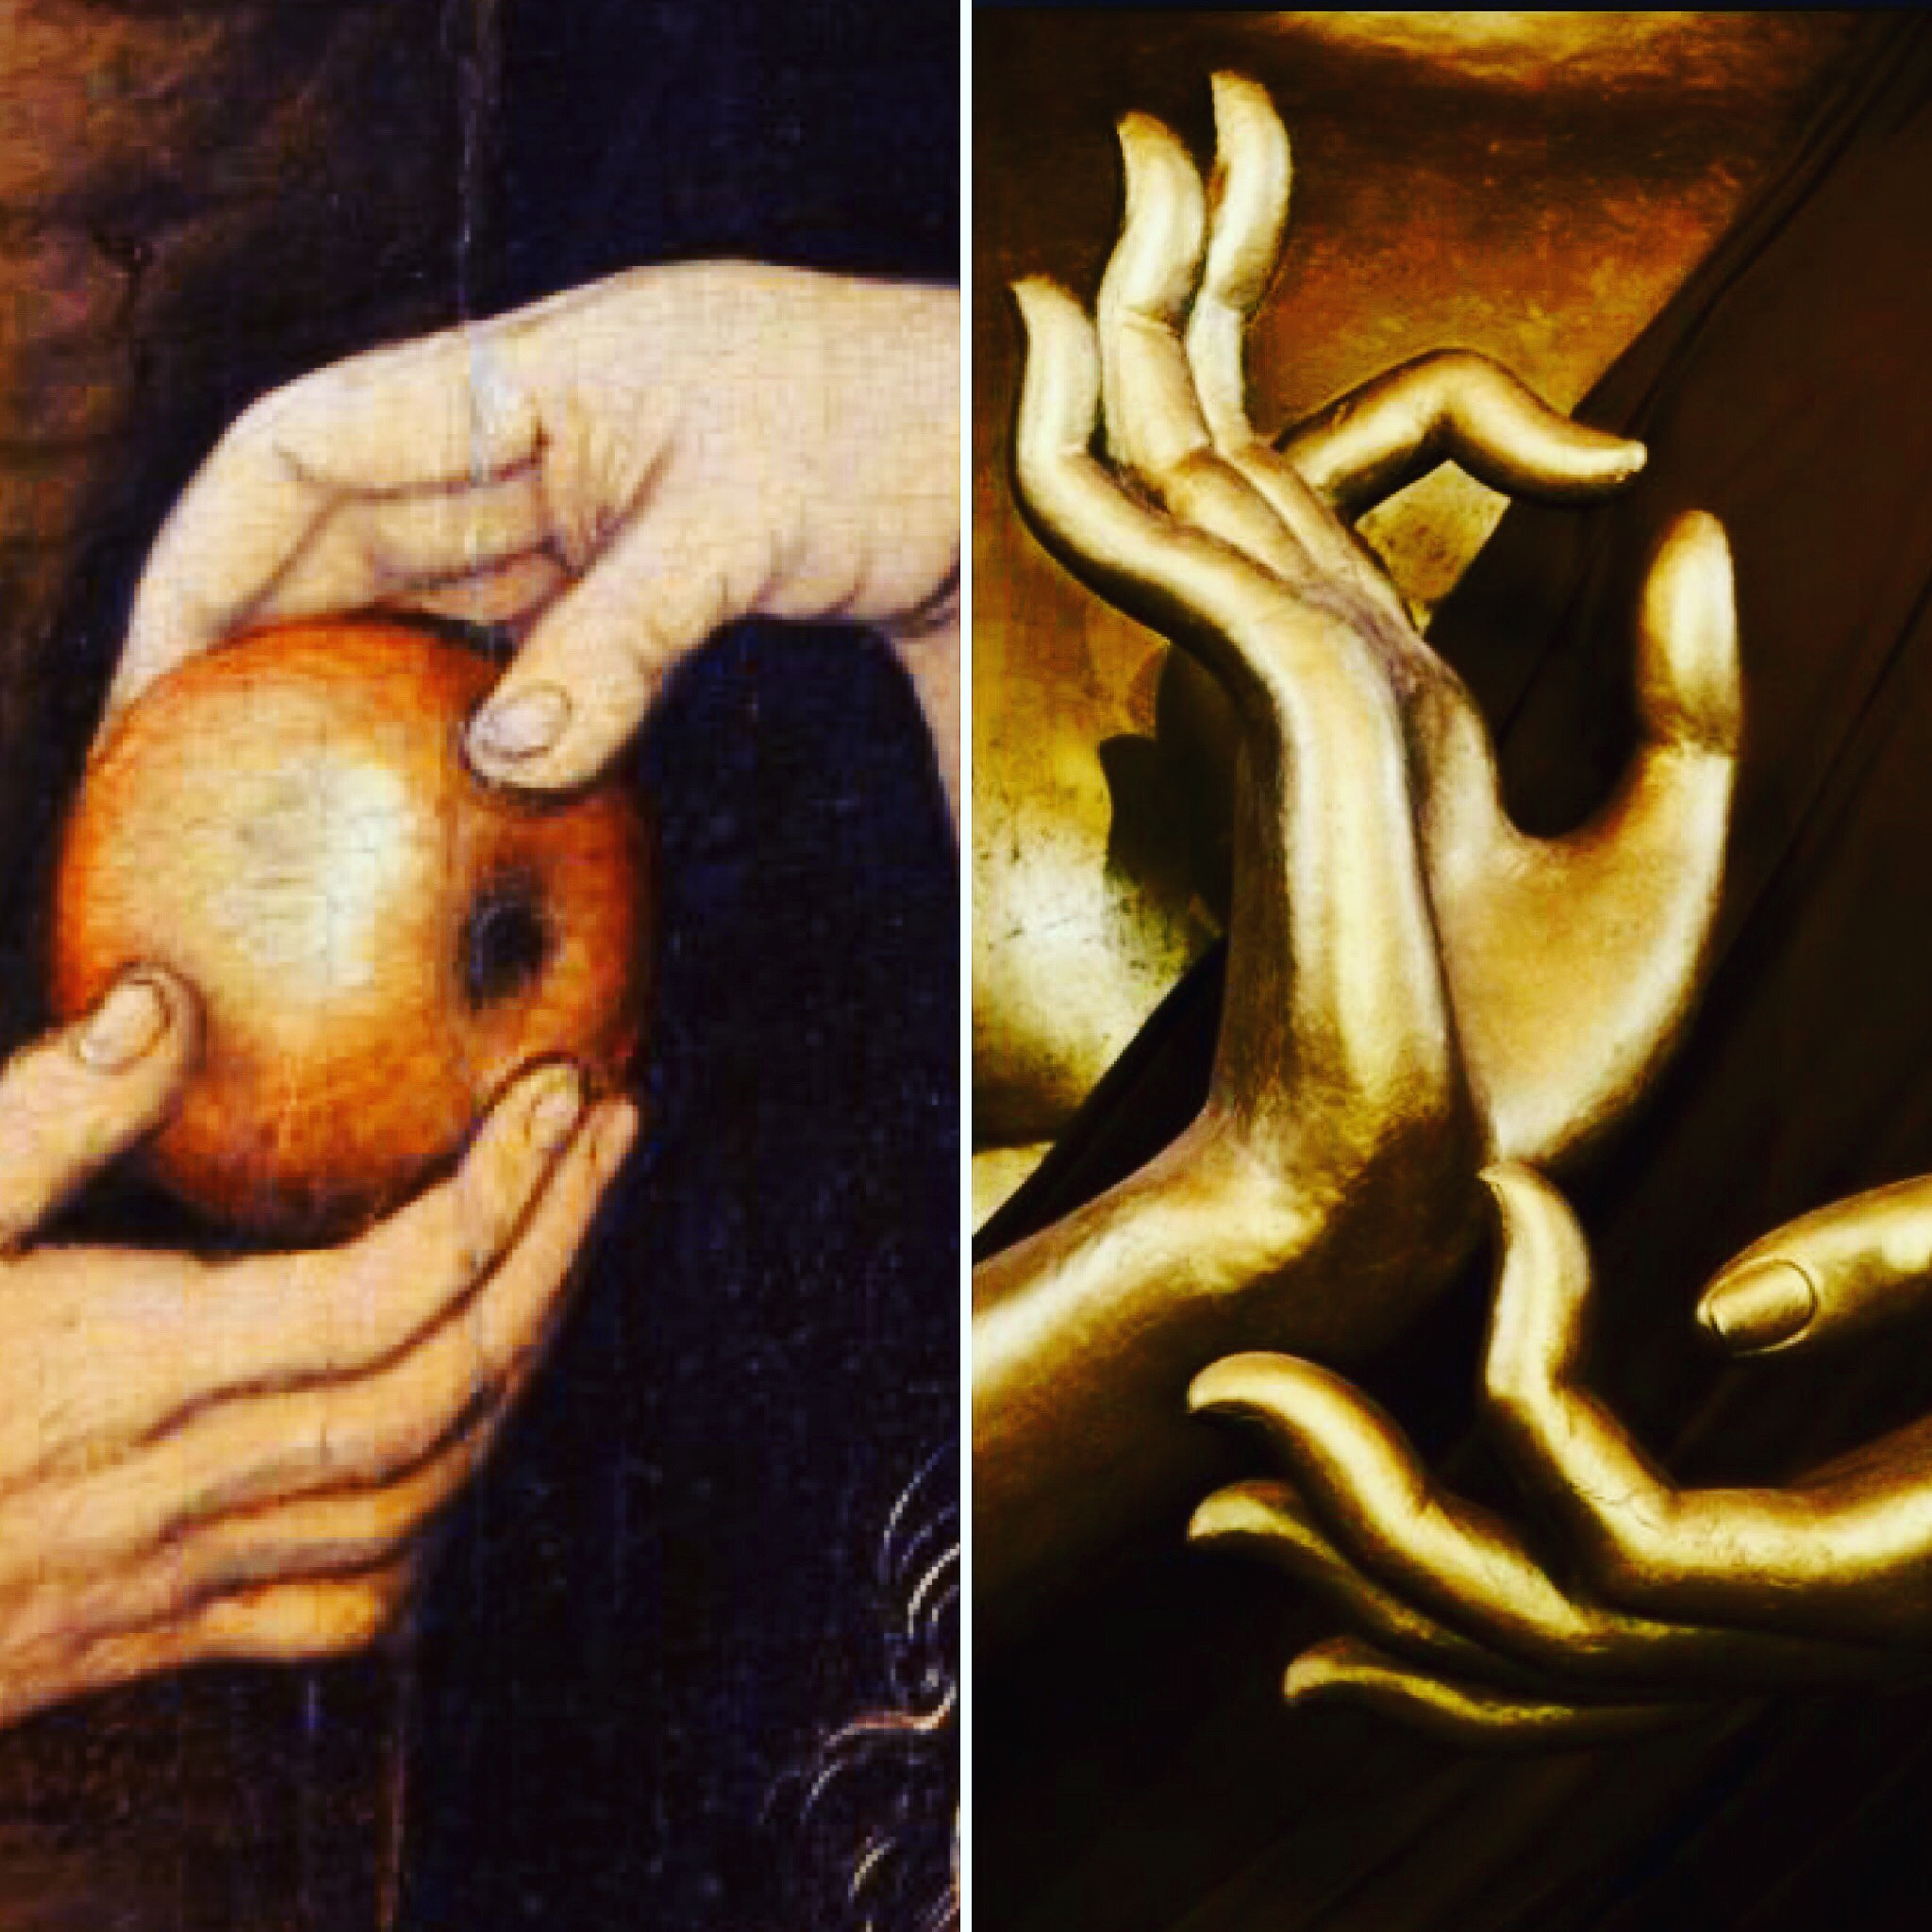 """On left: Eve offering the apple to Adam in the Garden of Eden and the serpent (detail), c.1520-25 (oil on wood) by Lucas Cranach the Elder (1472-1553).  On right: murti of Lord Buddha displaying the """"dharma chakra mudra"""" (detail)."""